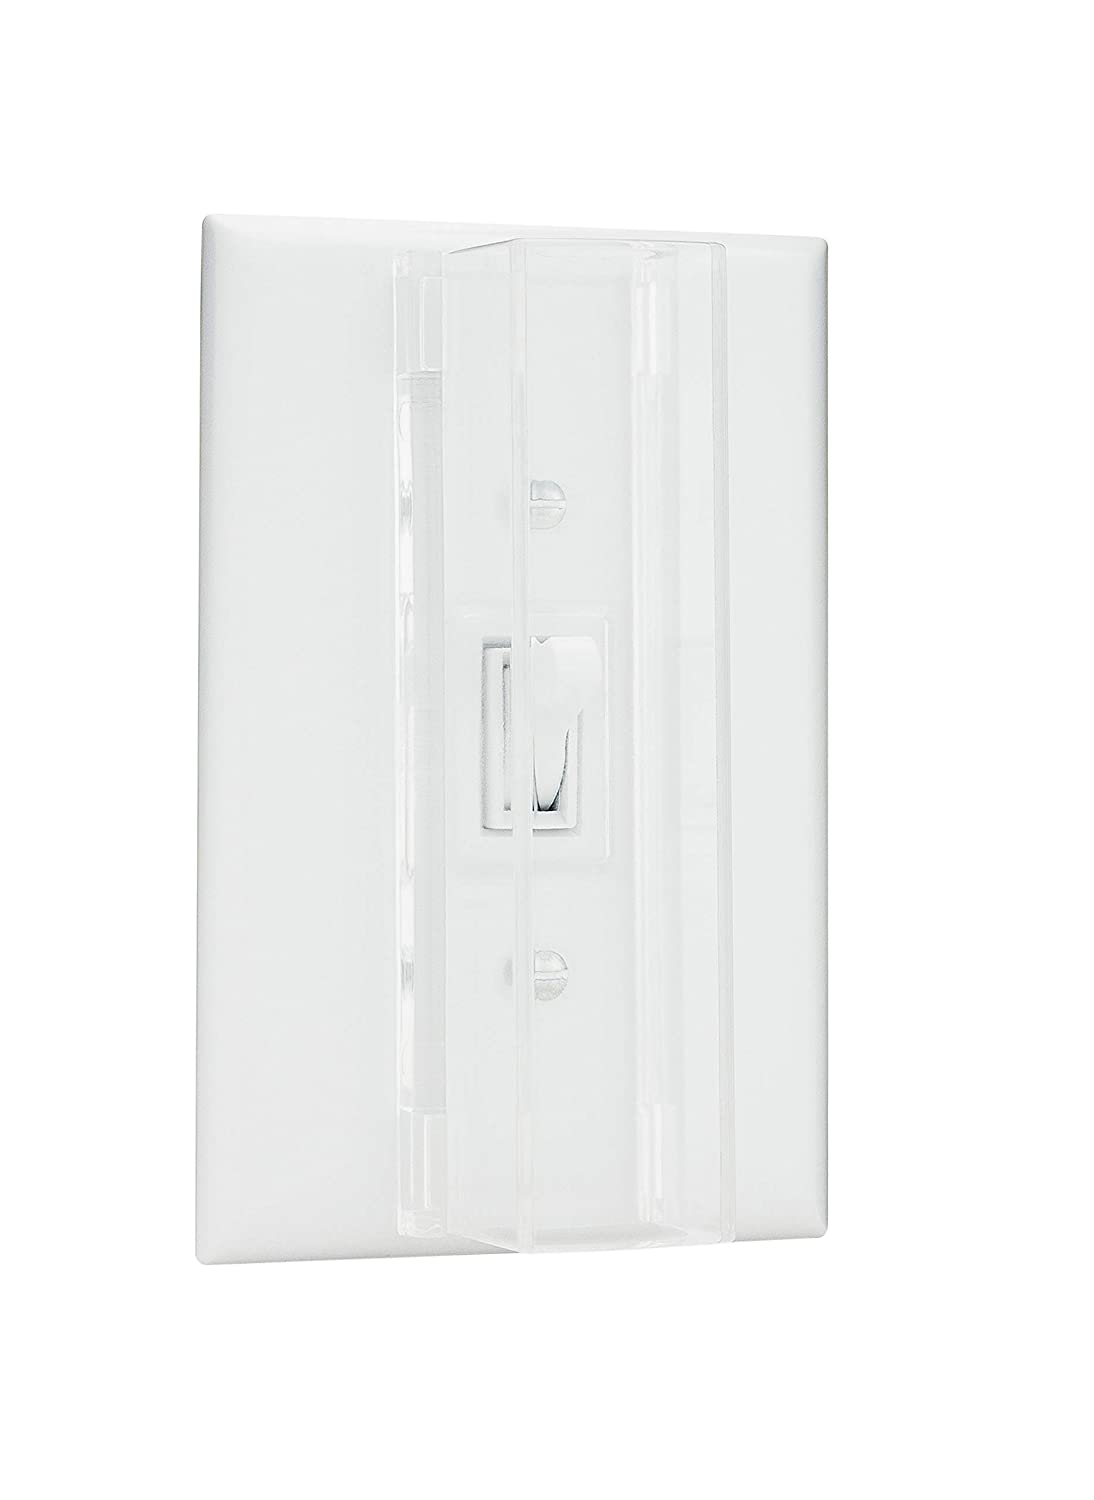 Child Proof Light Switch Guard For Standard Toggle 2 Way Stays On Style Baby